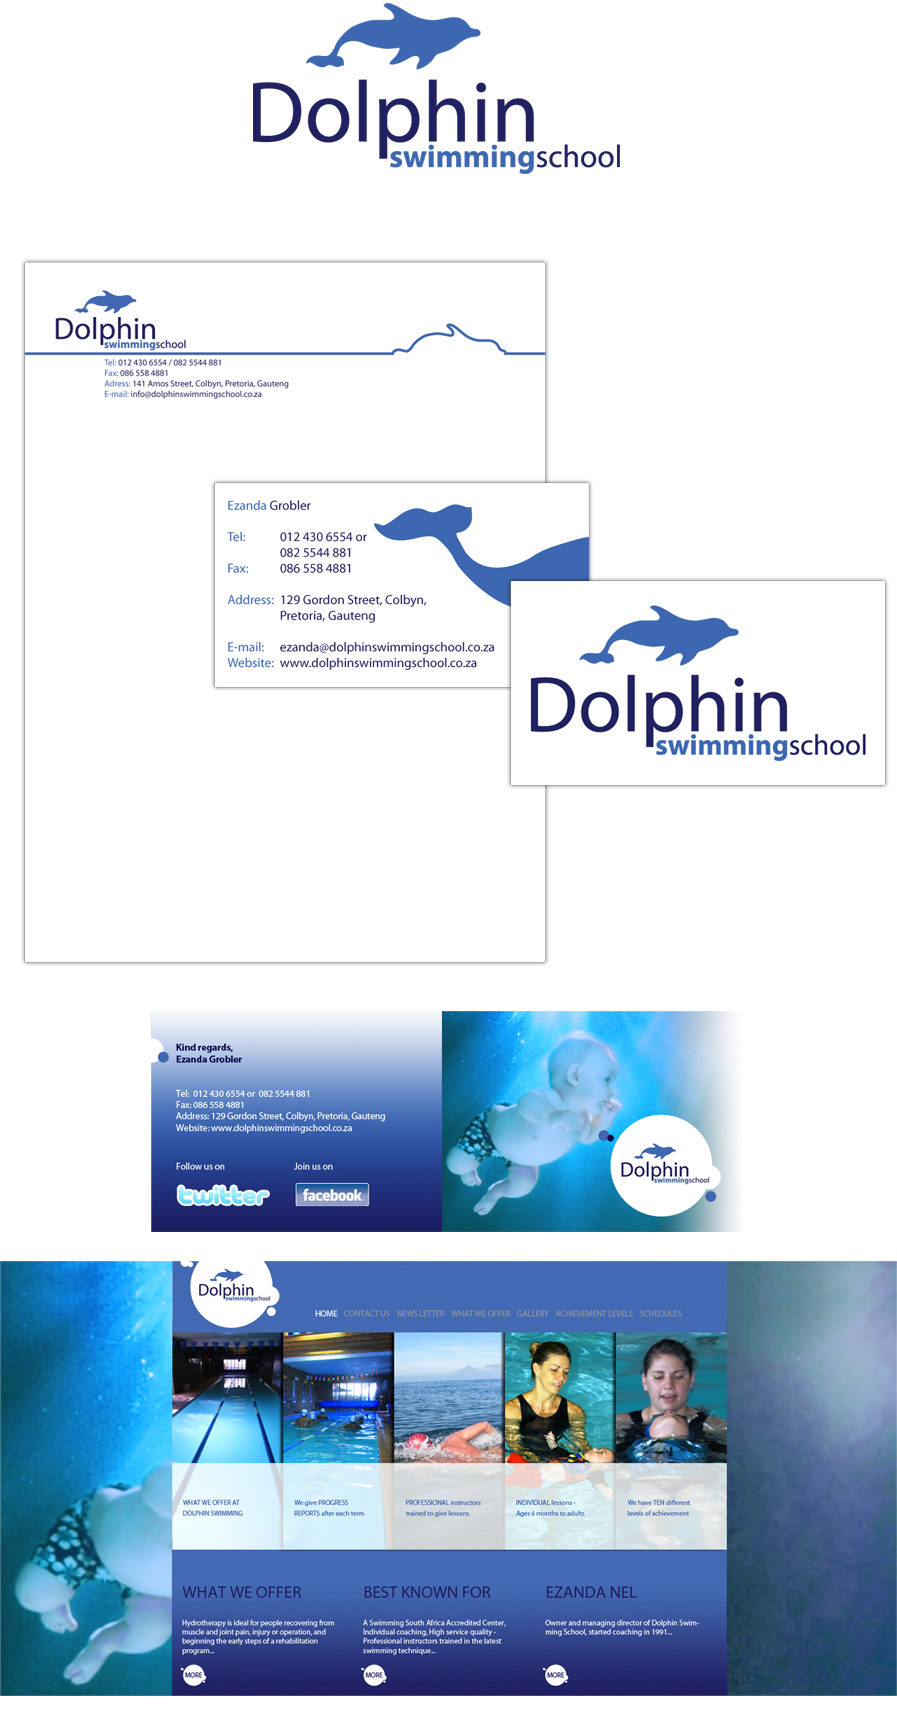 Dolphin Swimming School